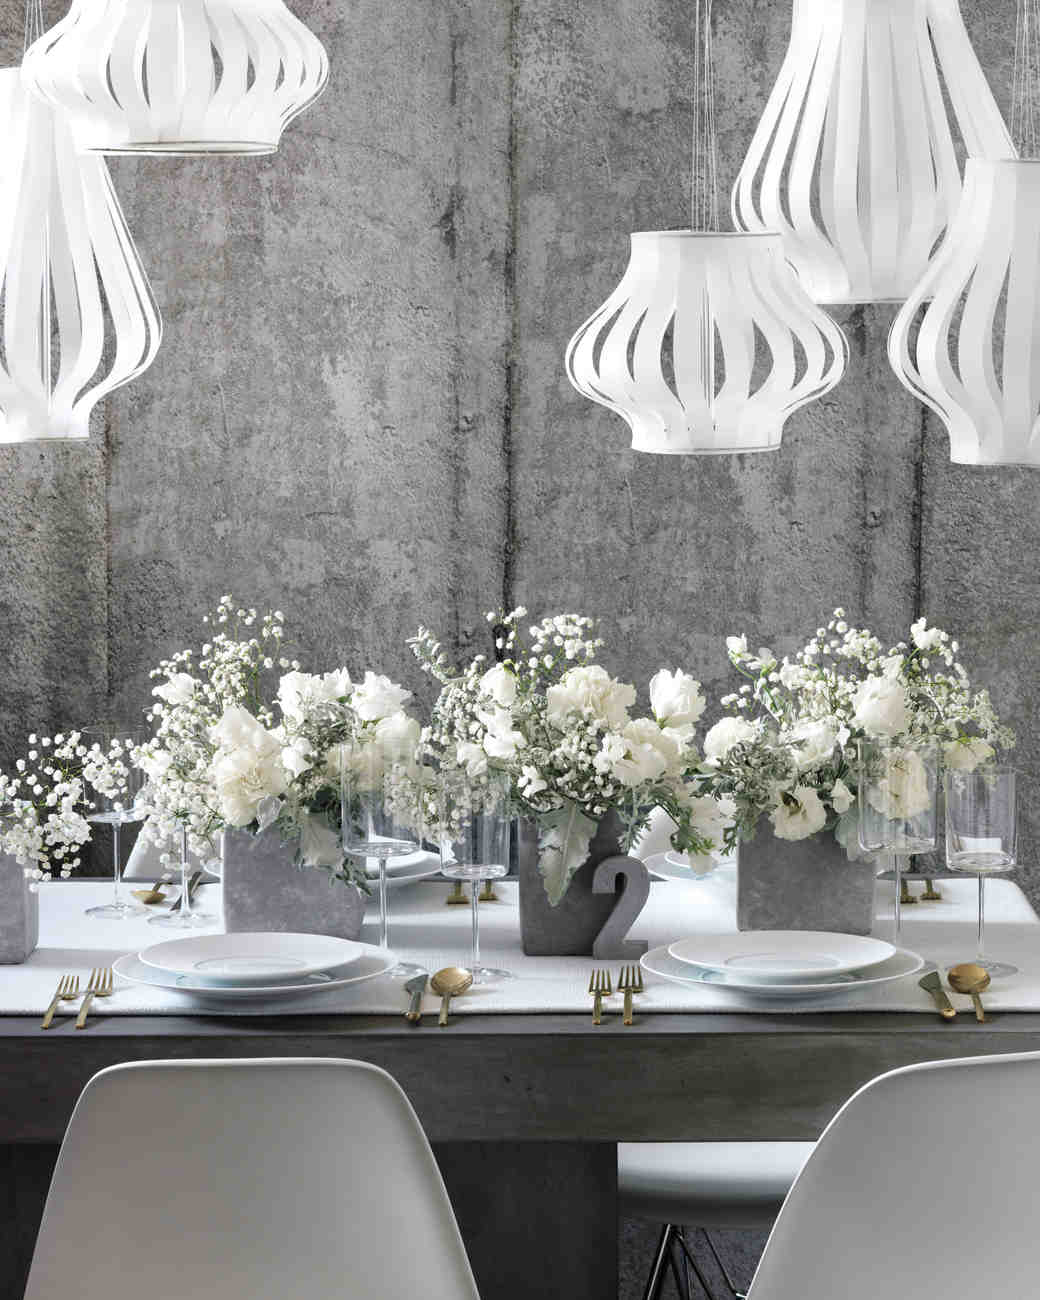 Powder White And Shades Of Gray Are An Elegant Pairing For Your